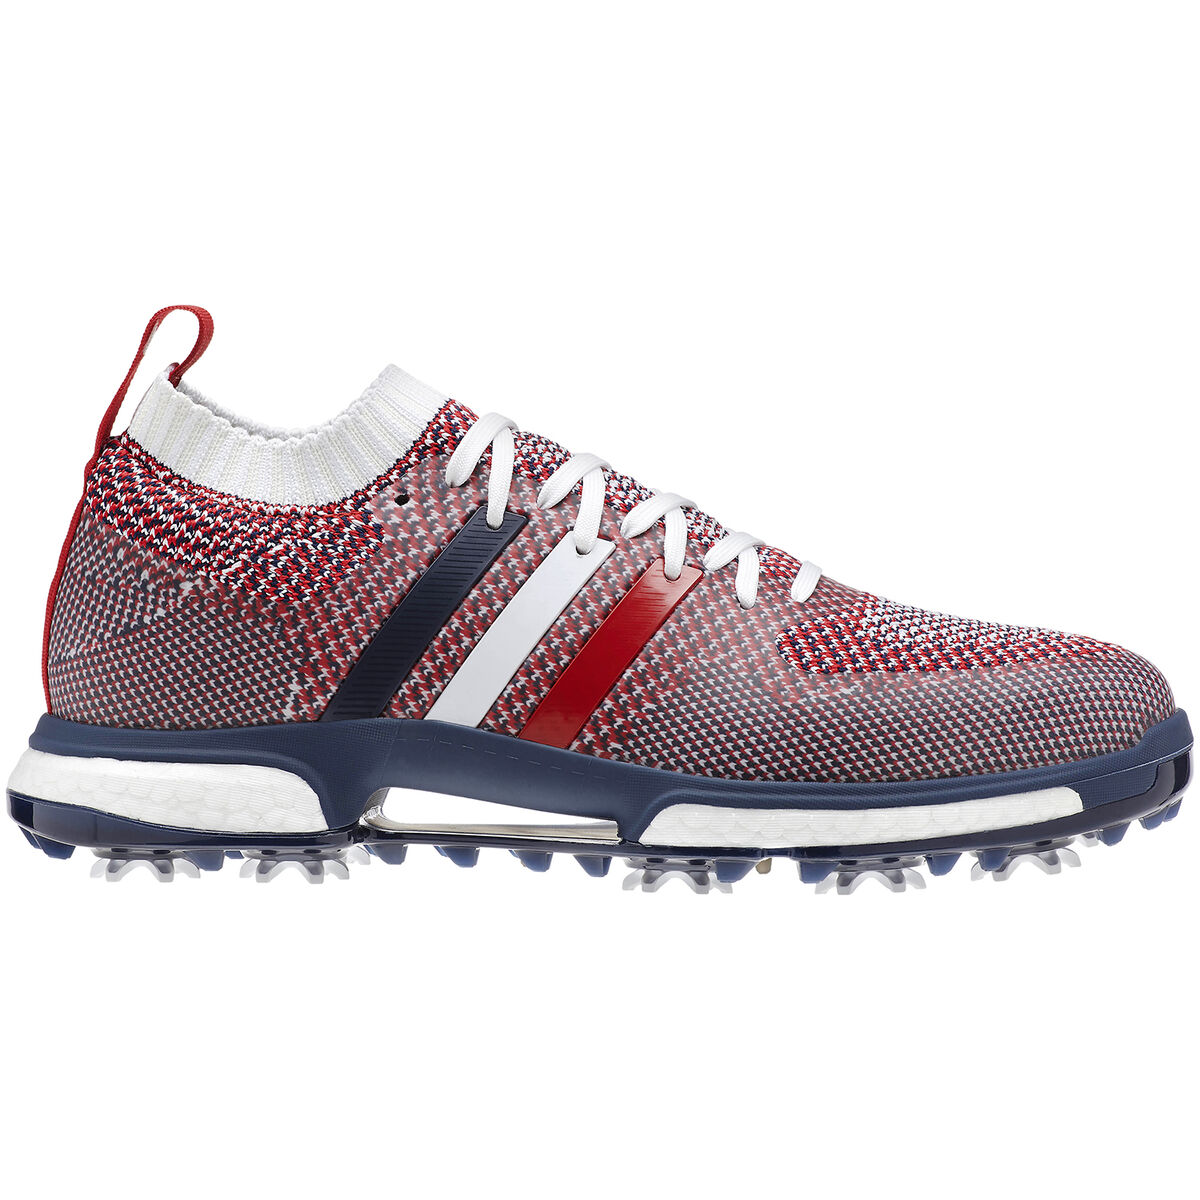 uk availability 8d94f de73e adidas TOUR 360 Knit USA Men's Golf Shoe - Red/White/Blue | PGA TOUR ...